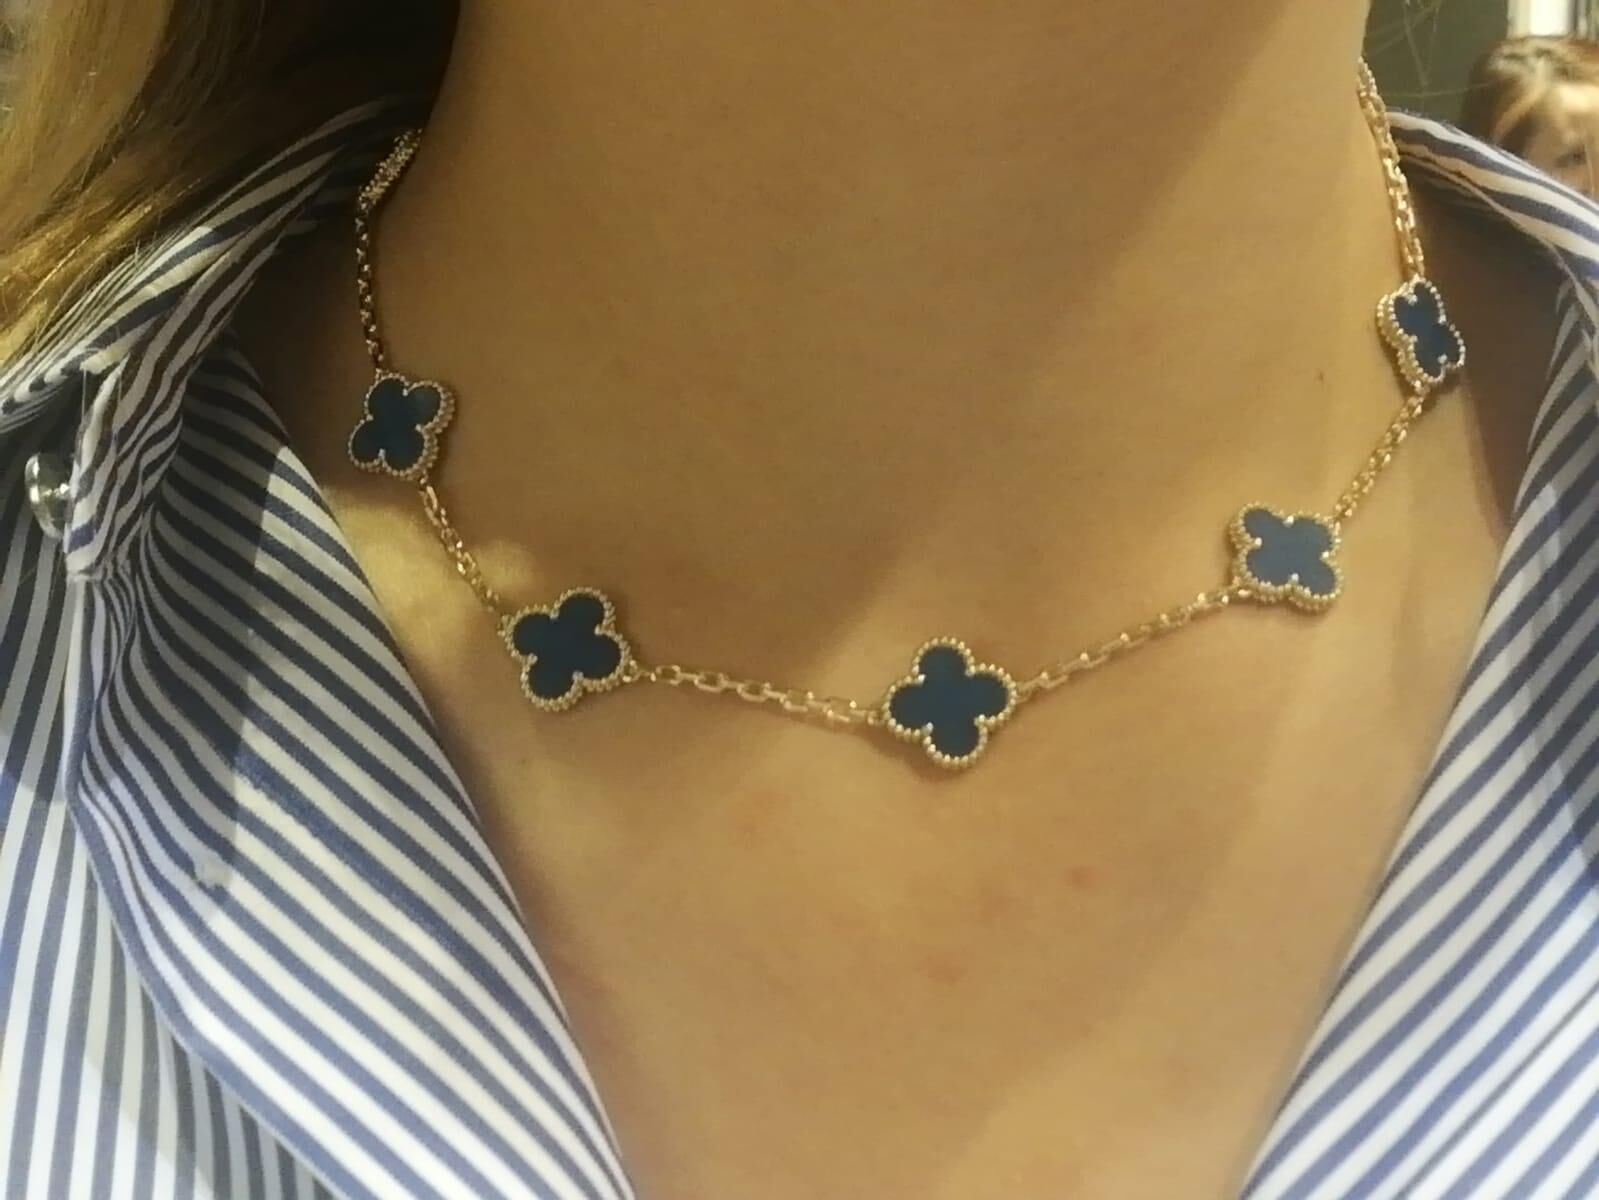 Van Cleef & Arpels Necklace VCA3235